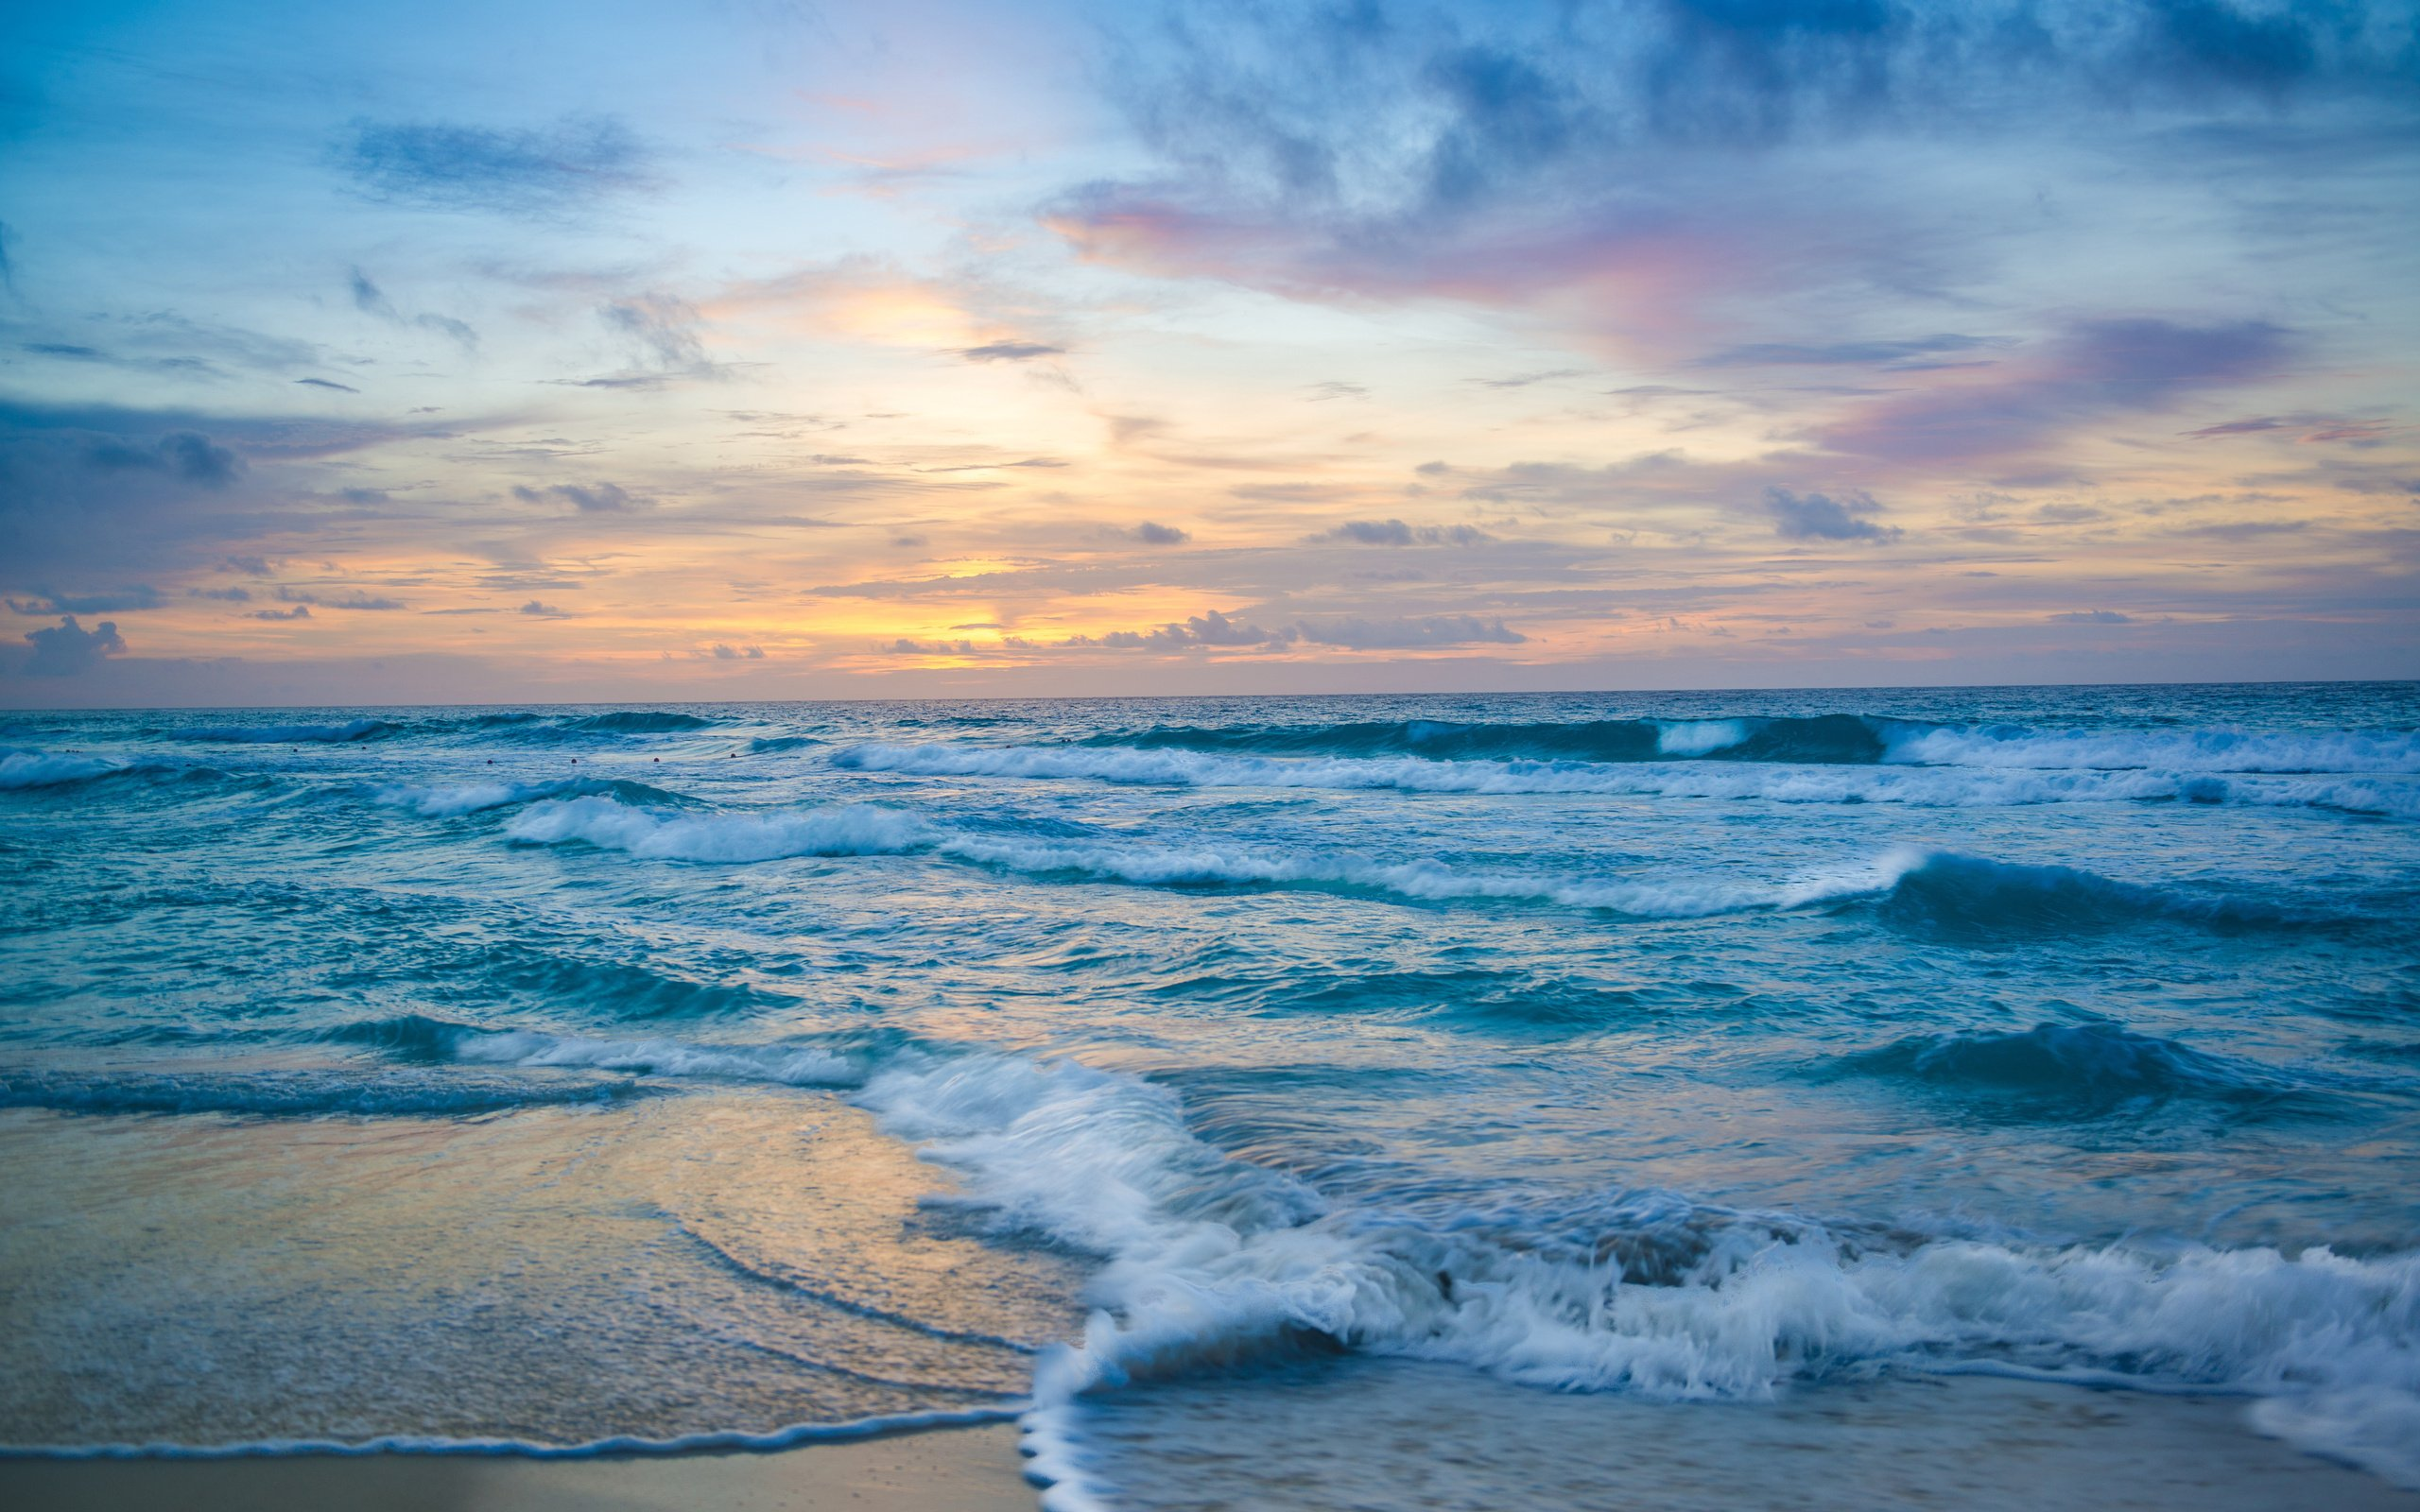 ocean sunset waves sky nature background hd wave horizon wallpapers preview